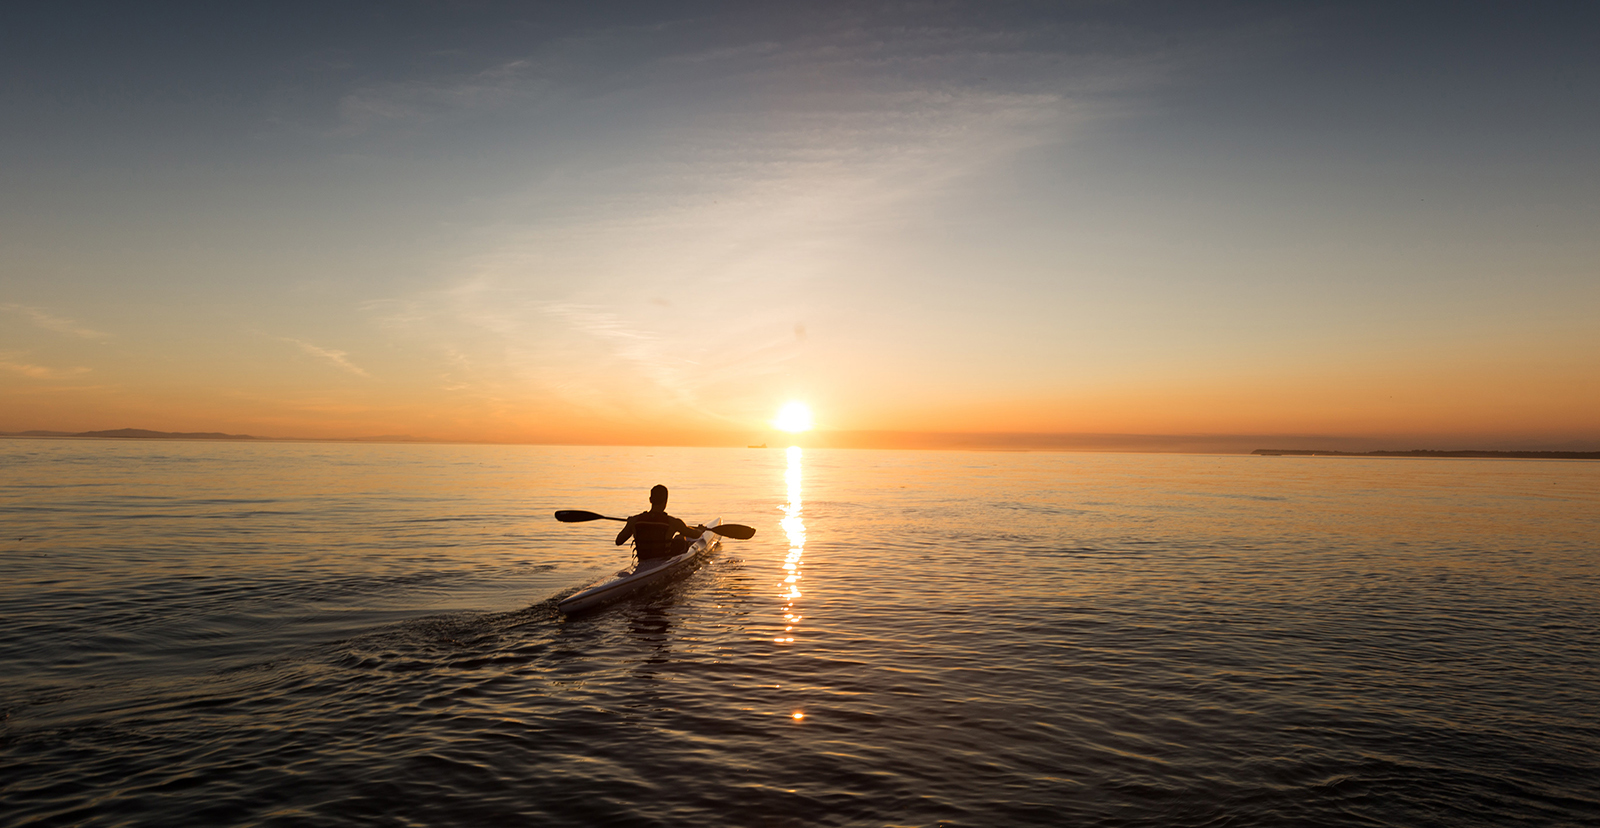 Silhouette of person in kayak padding towards sunset over water